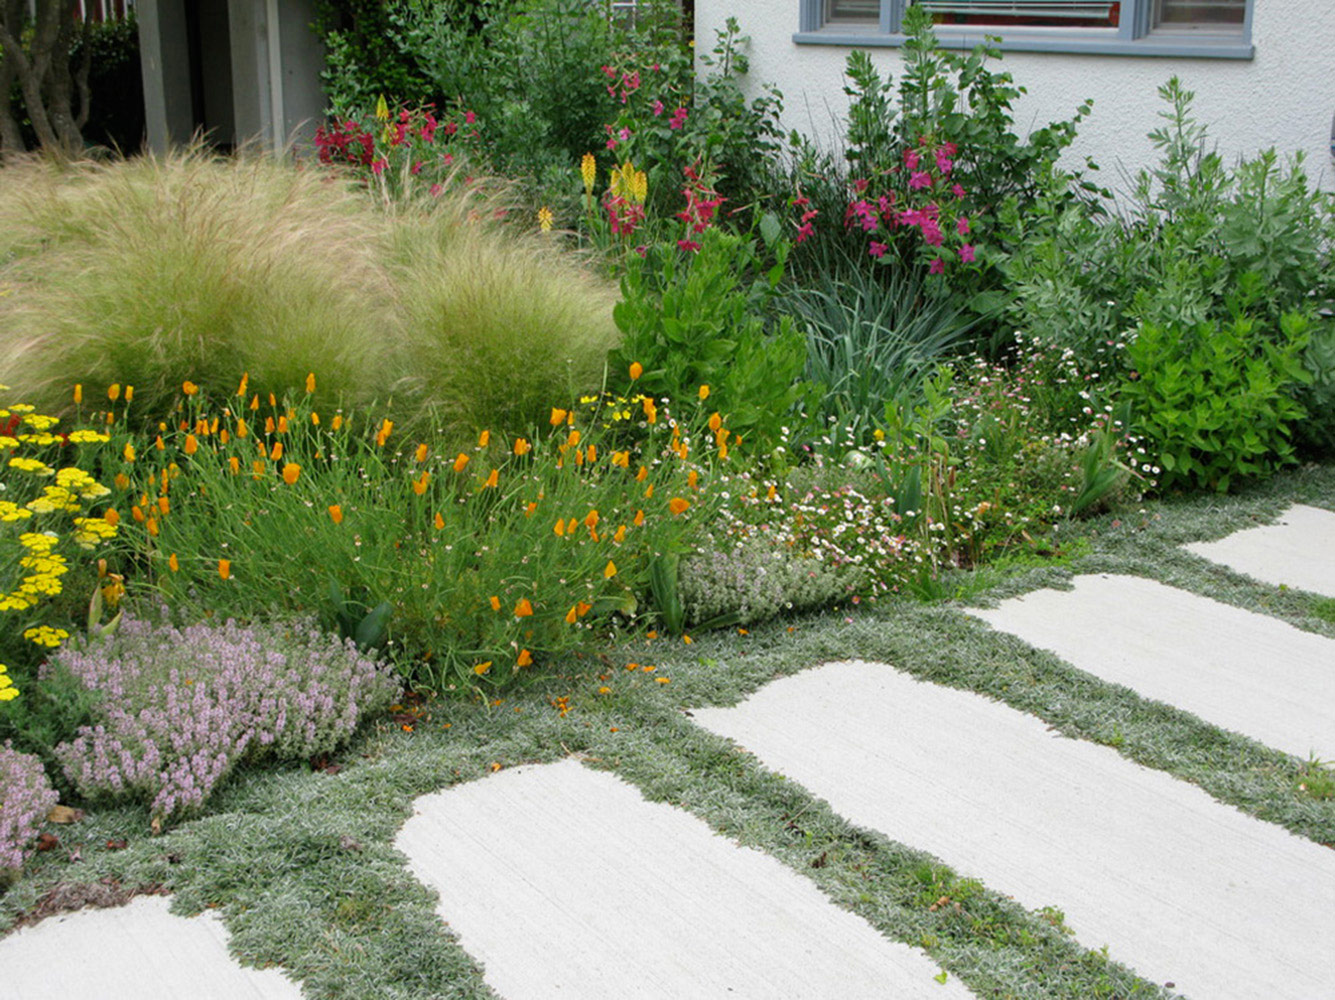 How to plant ground cover between pavers - Image4